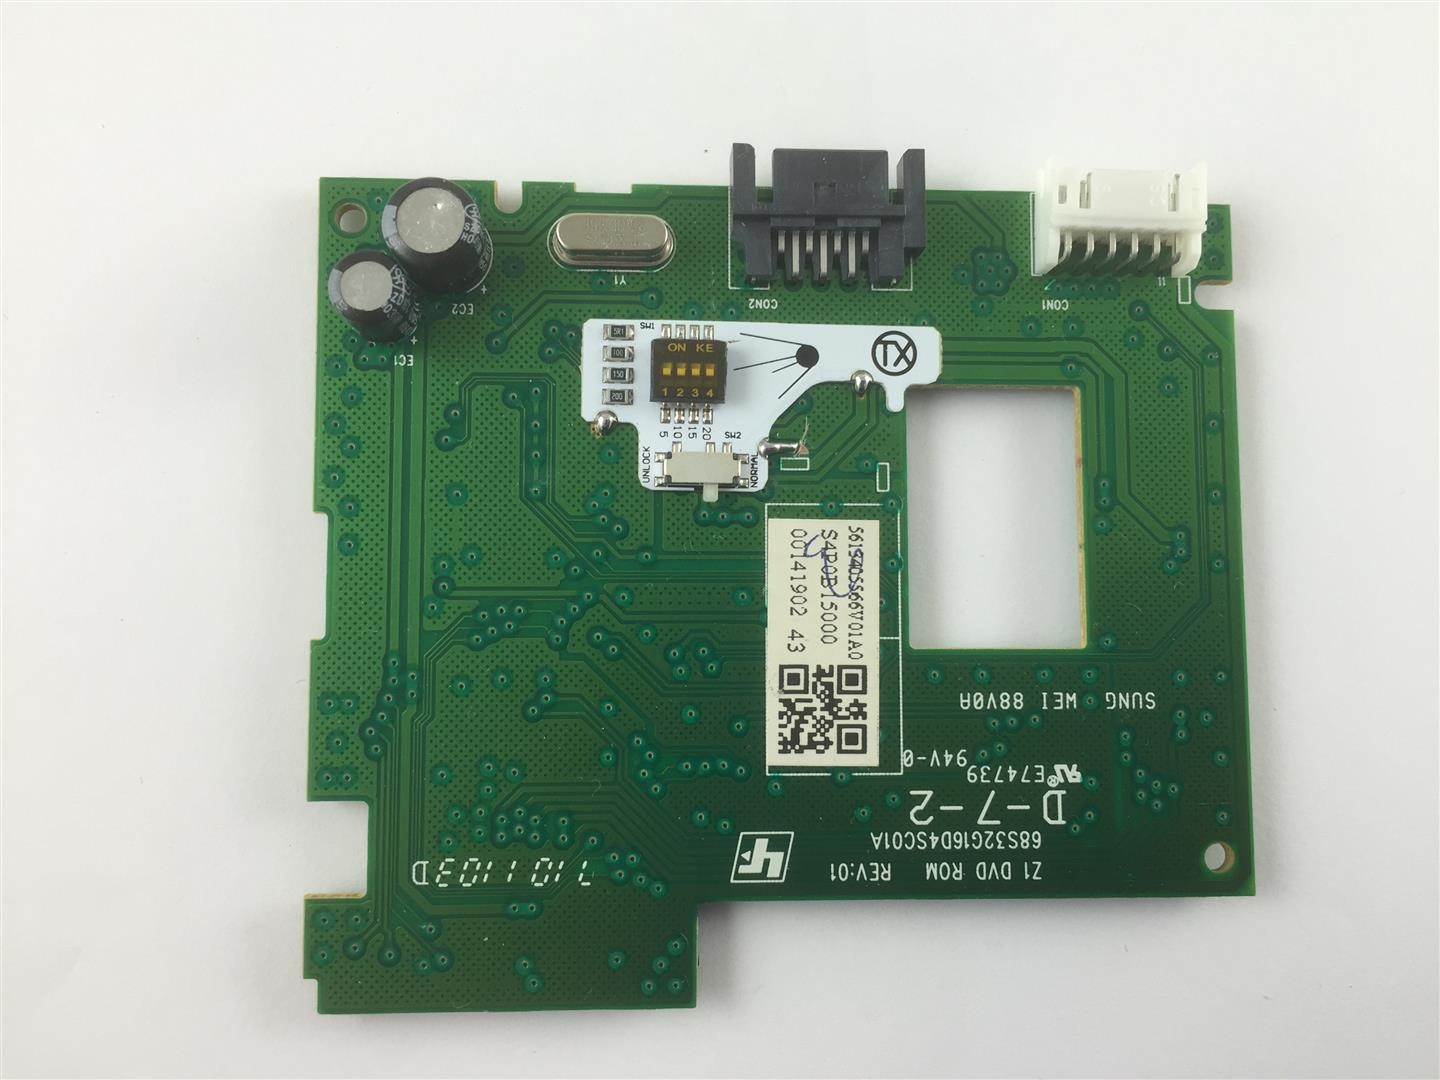 Liteon DG-16D4S - UNLOCKED REPLACEMENT PCB via Sputnik360